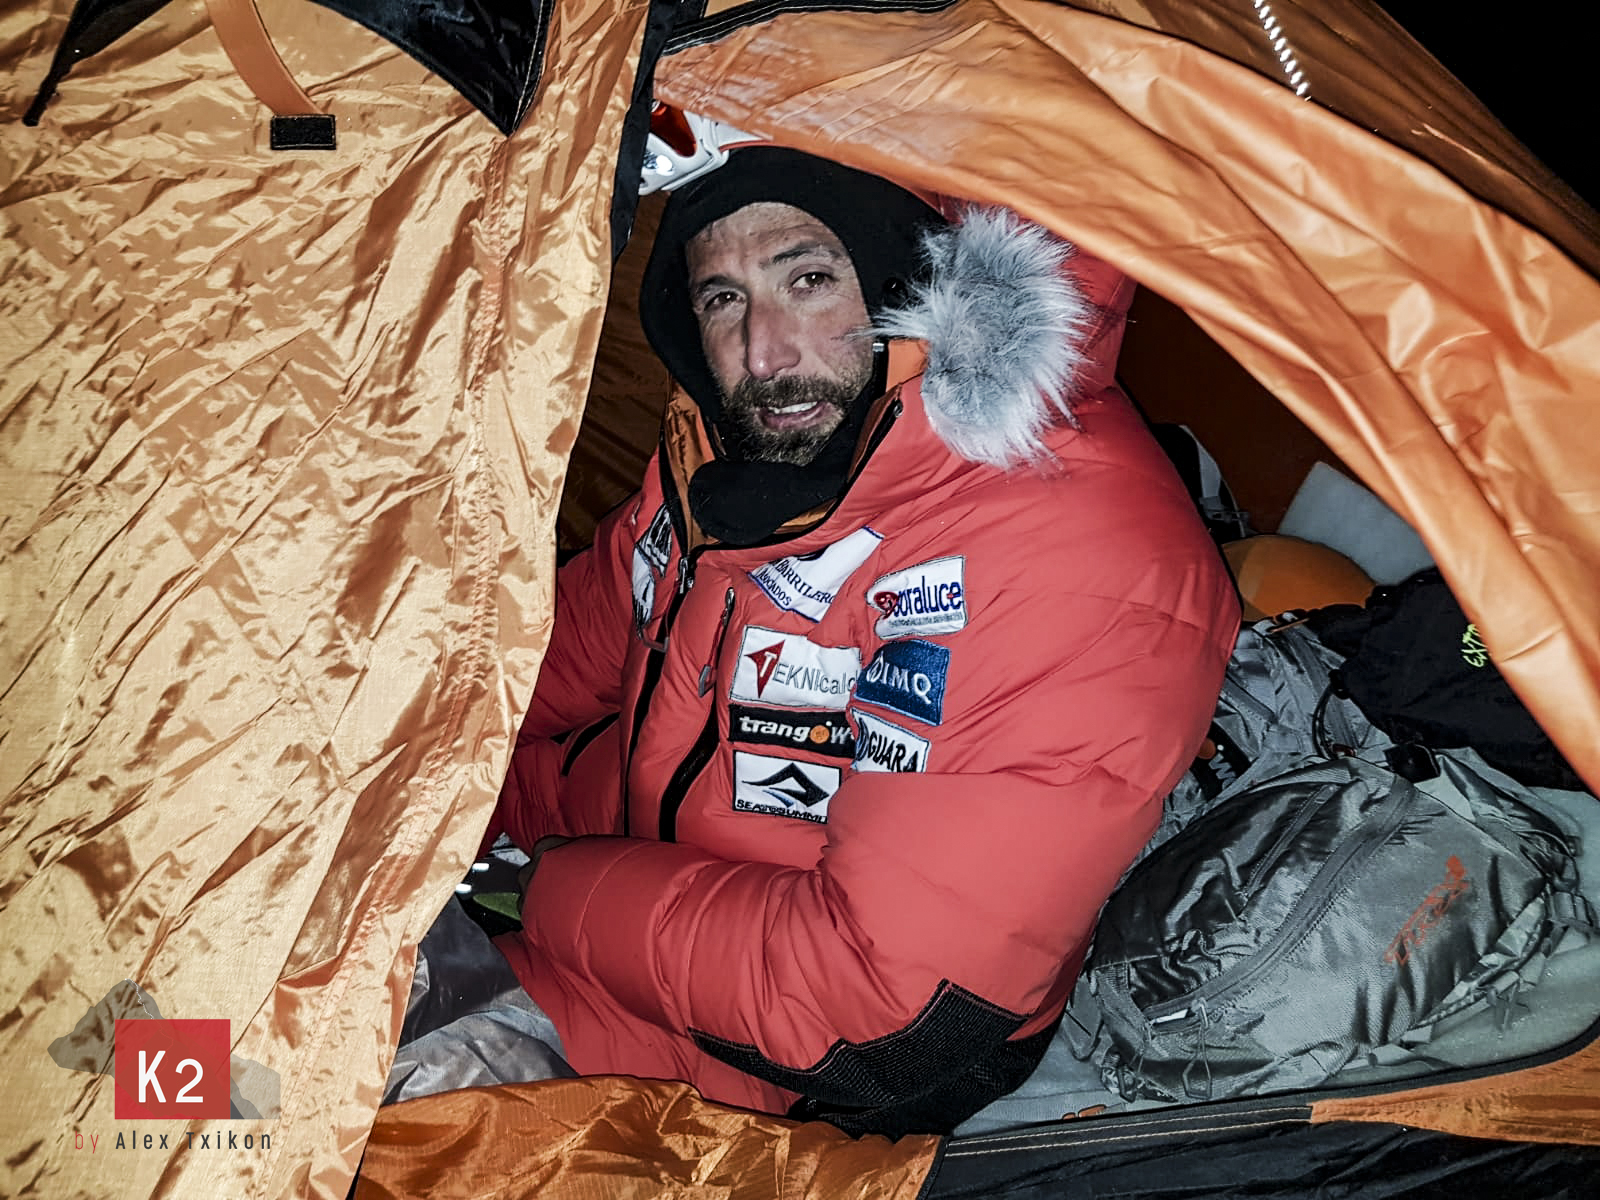 ALEX TXIKON EXPEDICIÓN K2 INVERNAL 2019. VIDEO, FOTOS Y BALANCE PERSONAL DE ALEX.